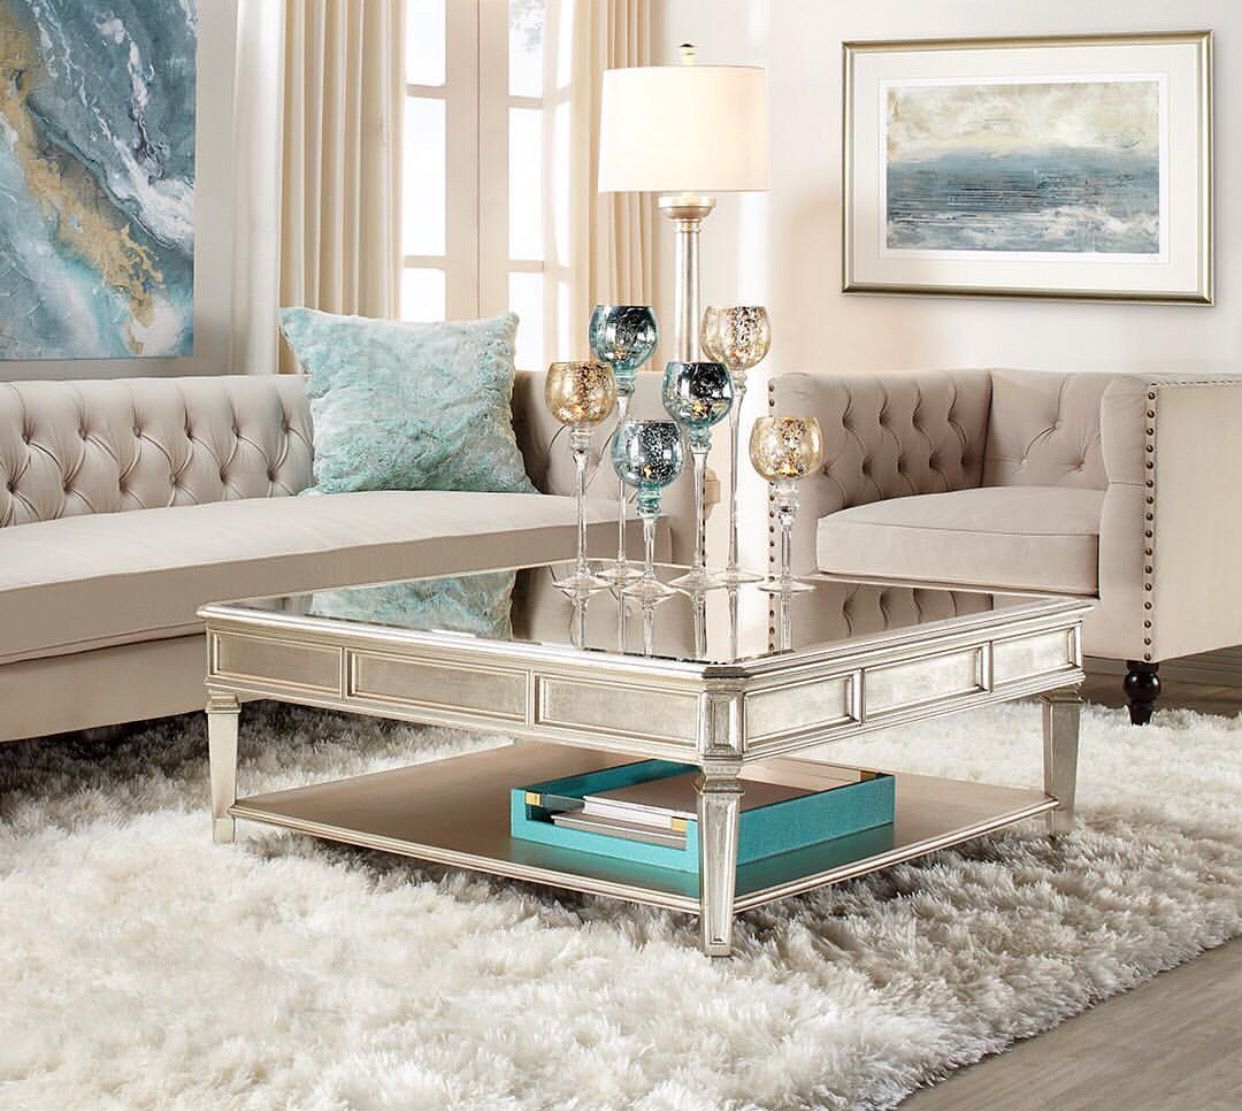 Love this center table! (With images) | Living room ...